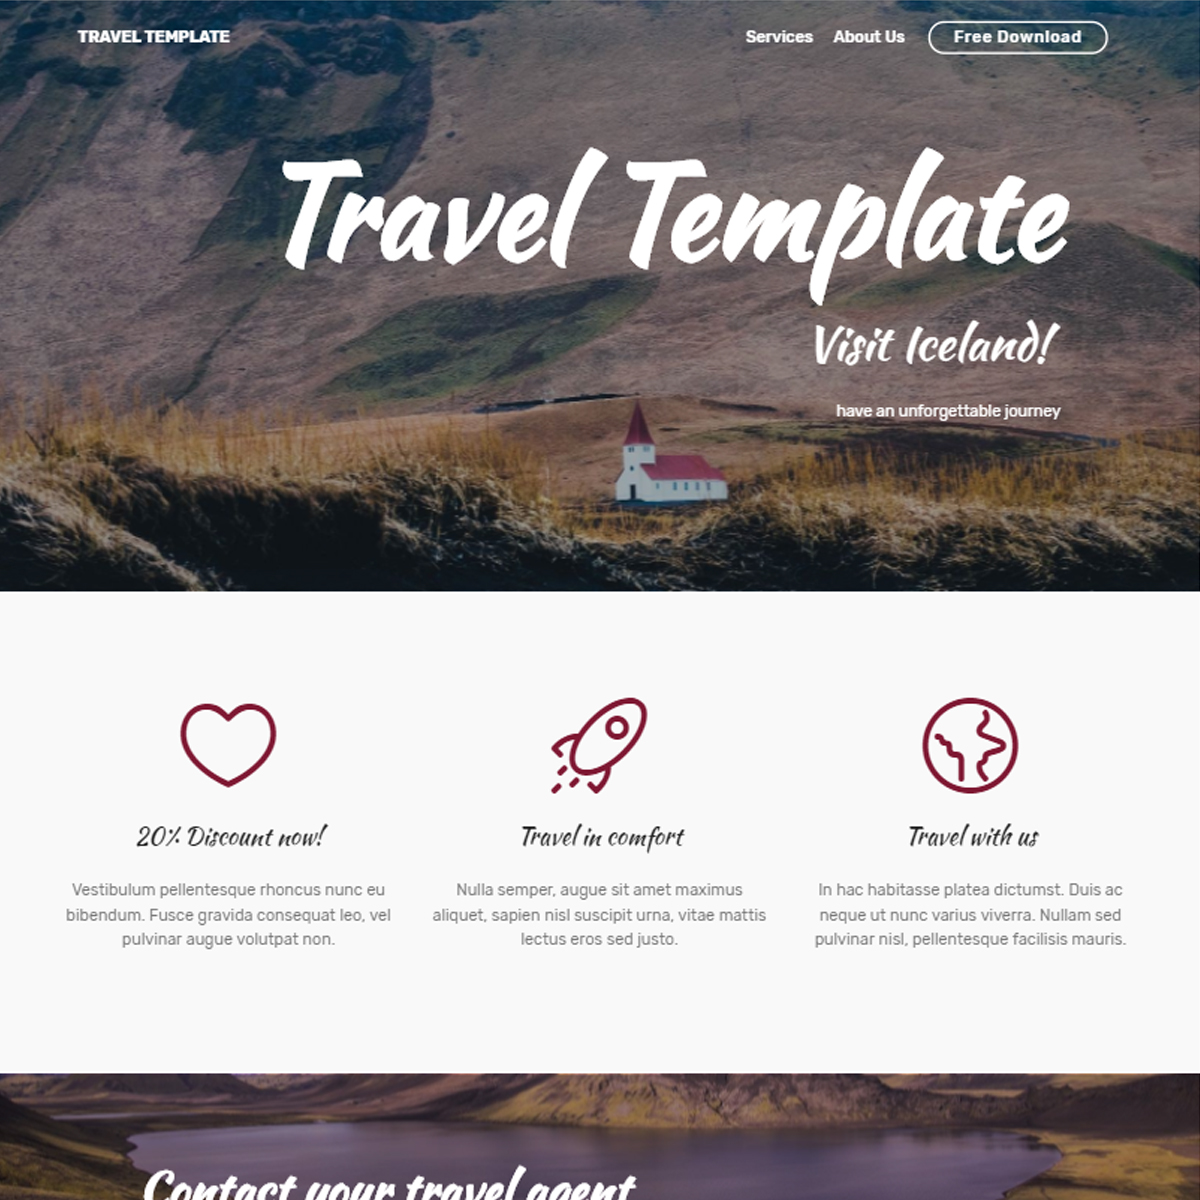 Free Download Bootstrap Travel Templates